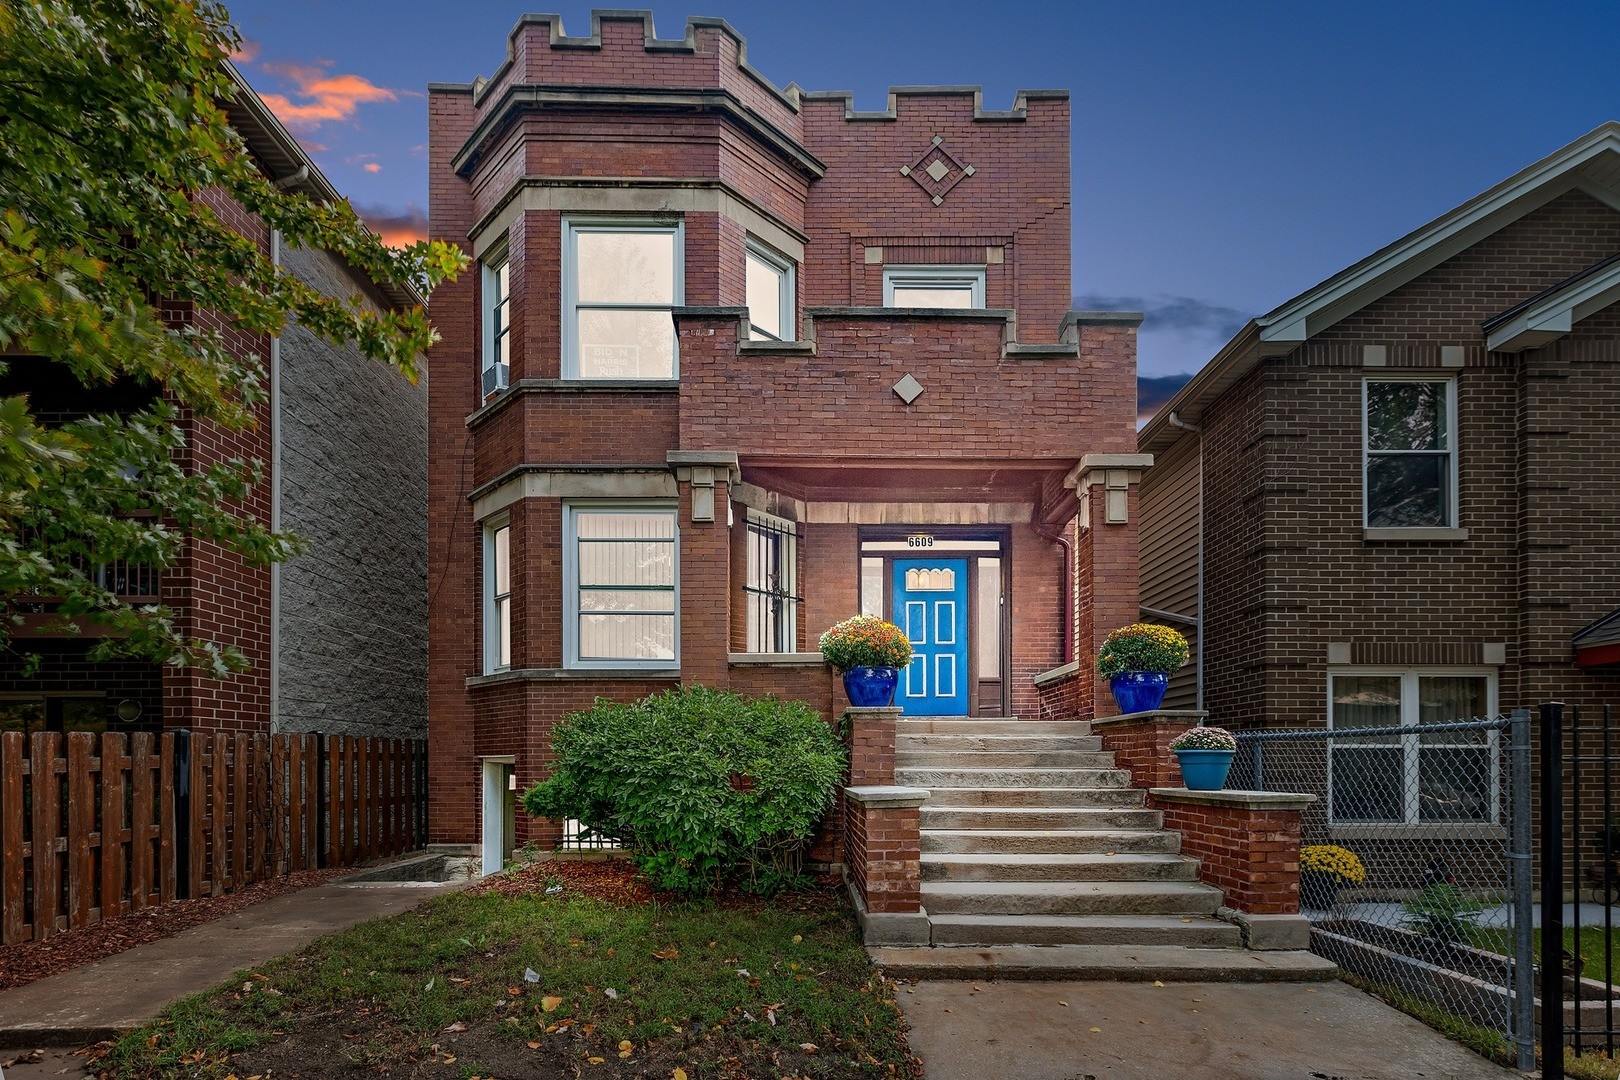 Multi-Family Home In Englewood